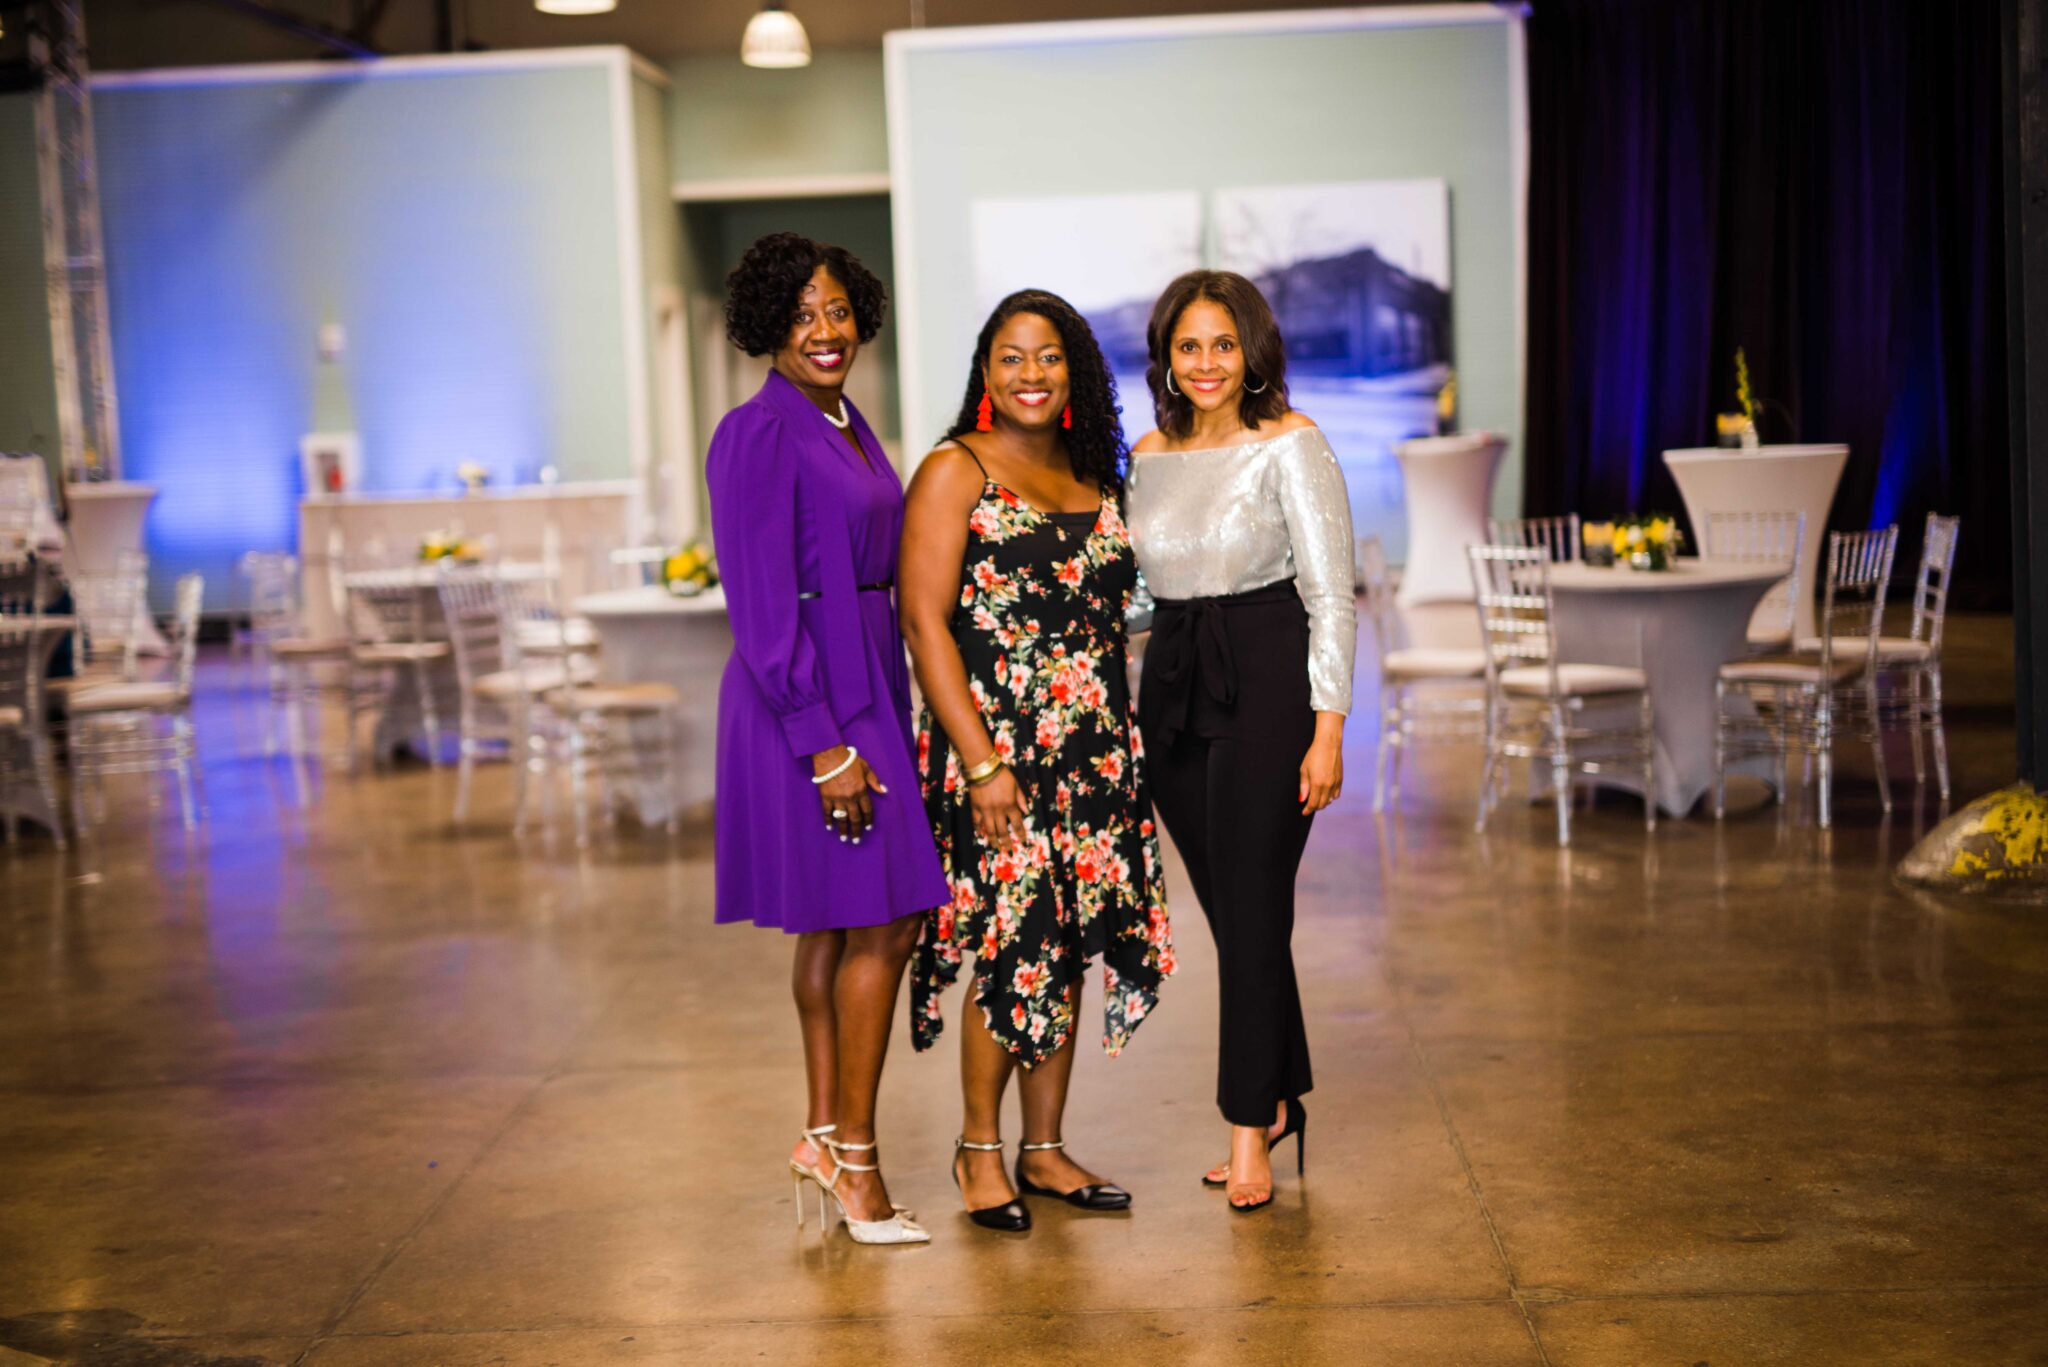 4 reasons to celebrate strong women at Unleashed, A Philanthroparty, Oct. 16